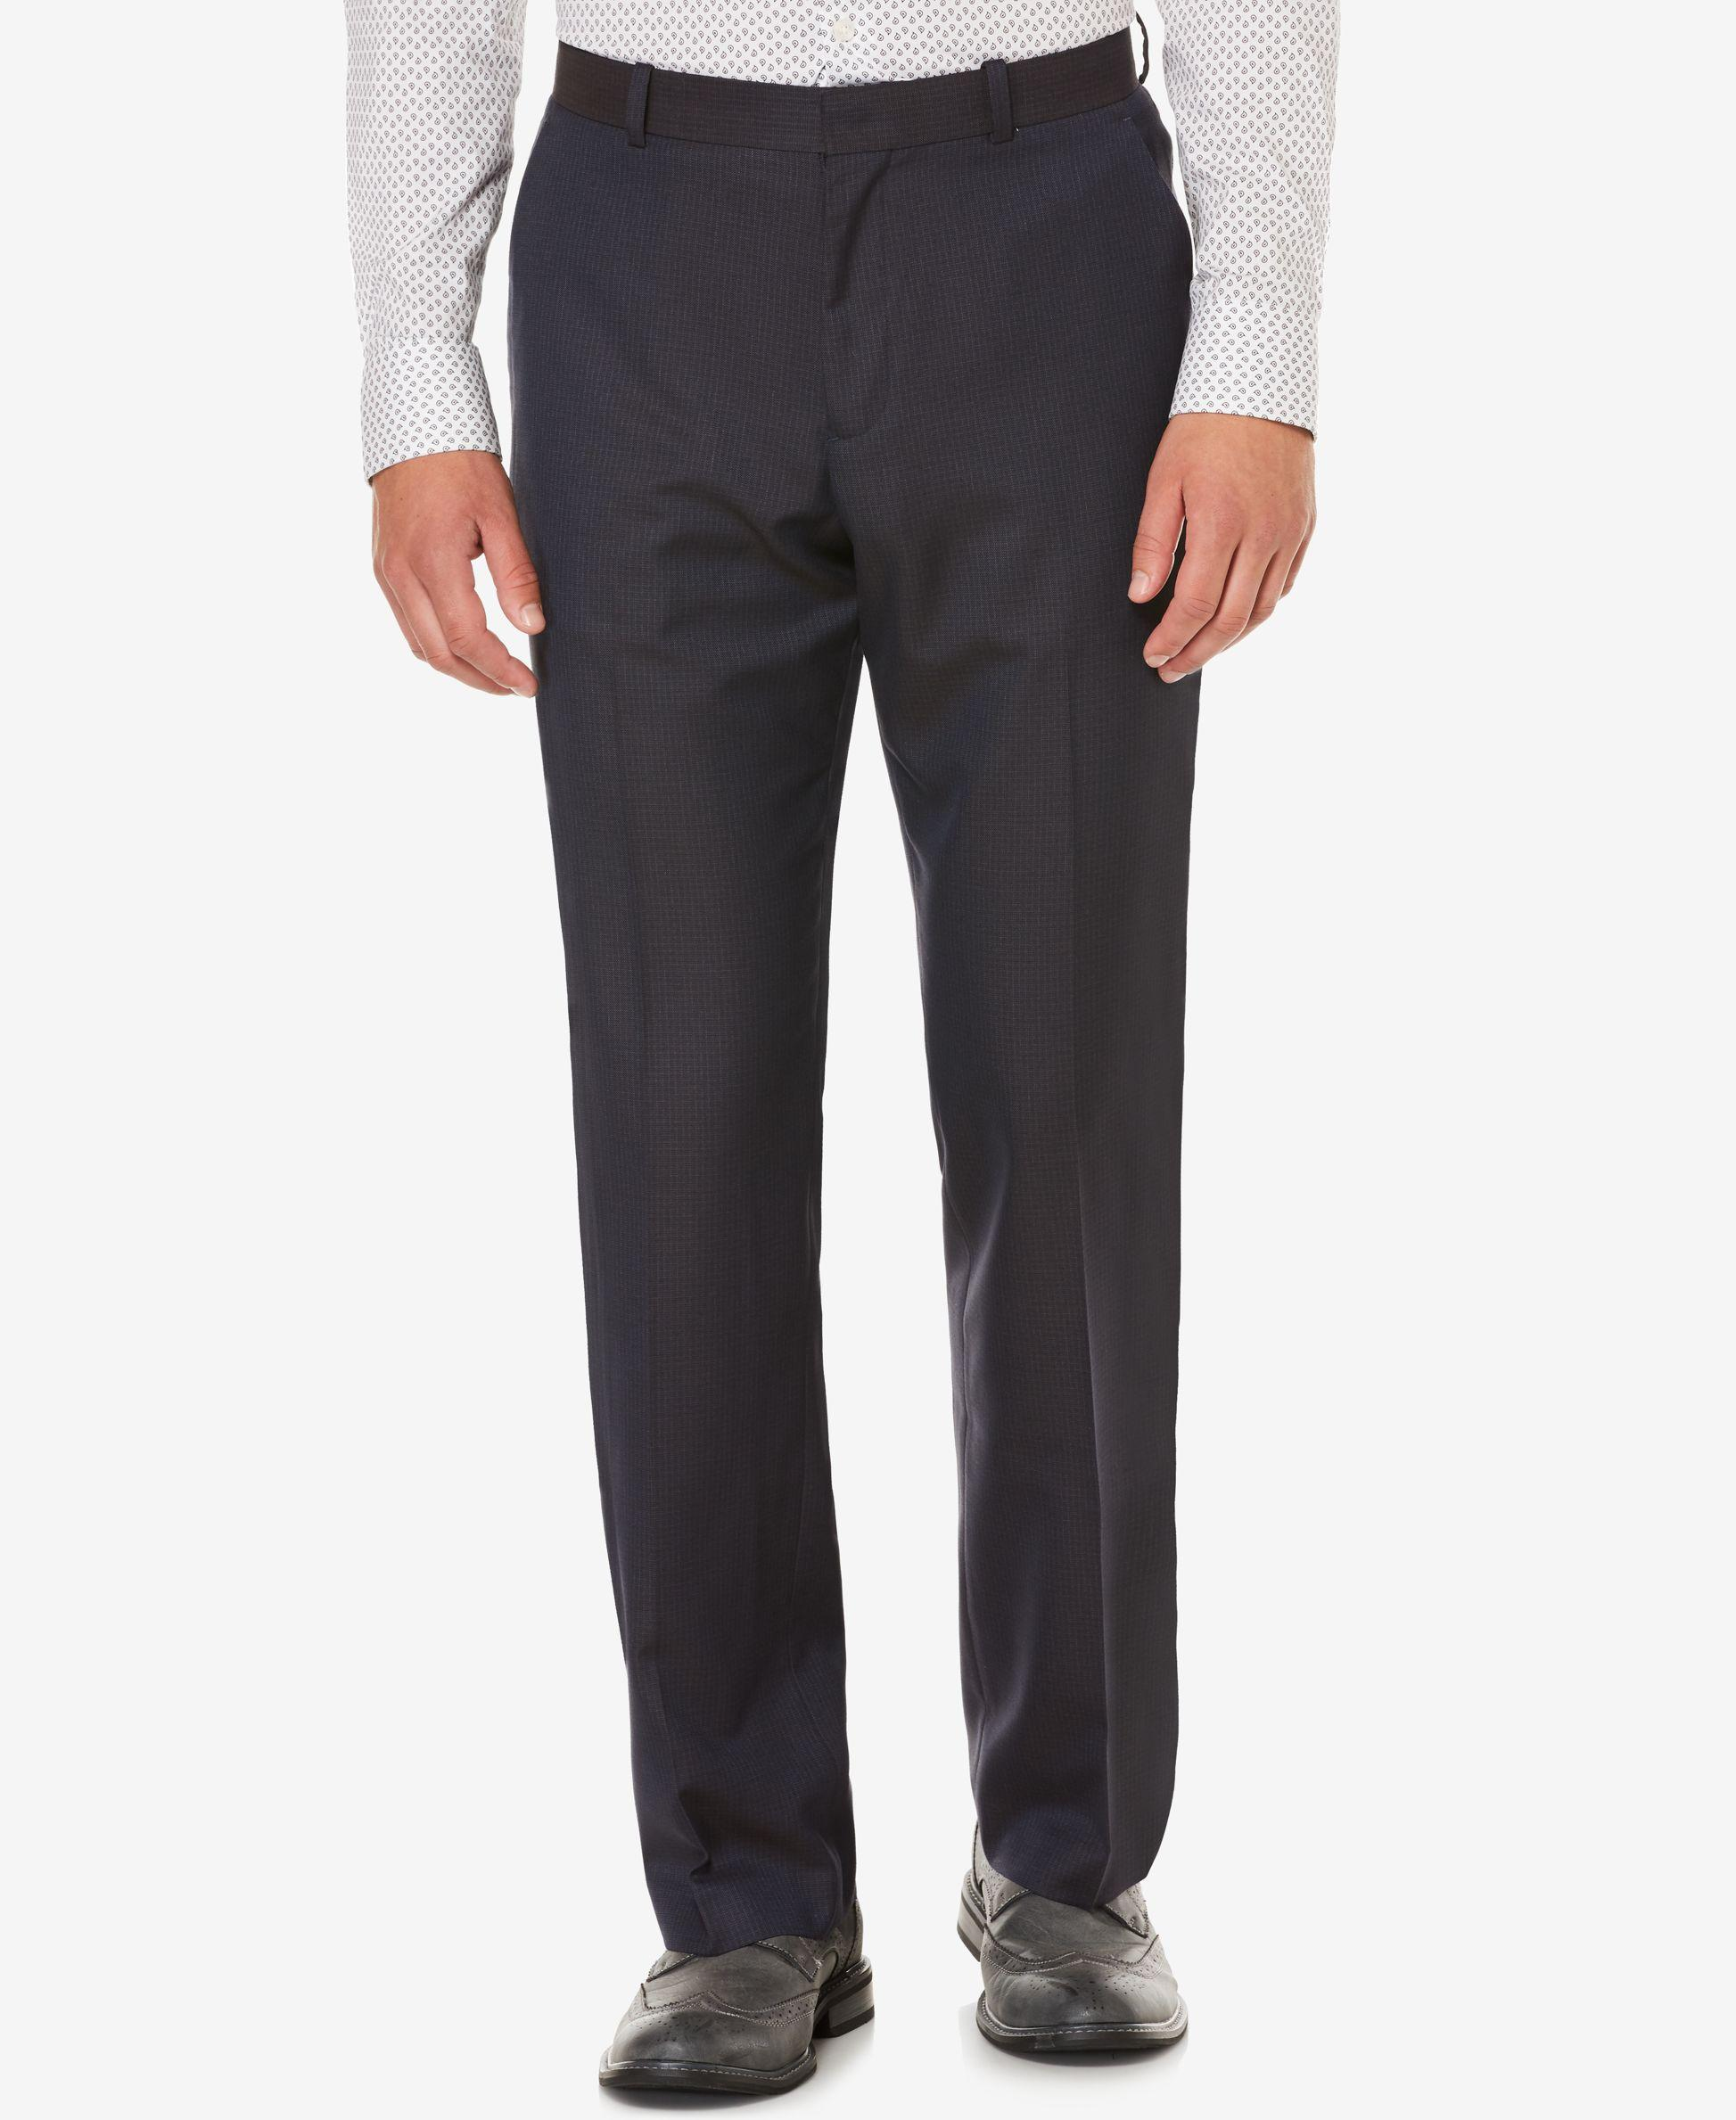 Perry Ellis Men S Classic Fit Flat Front Heathered Dress